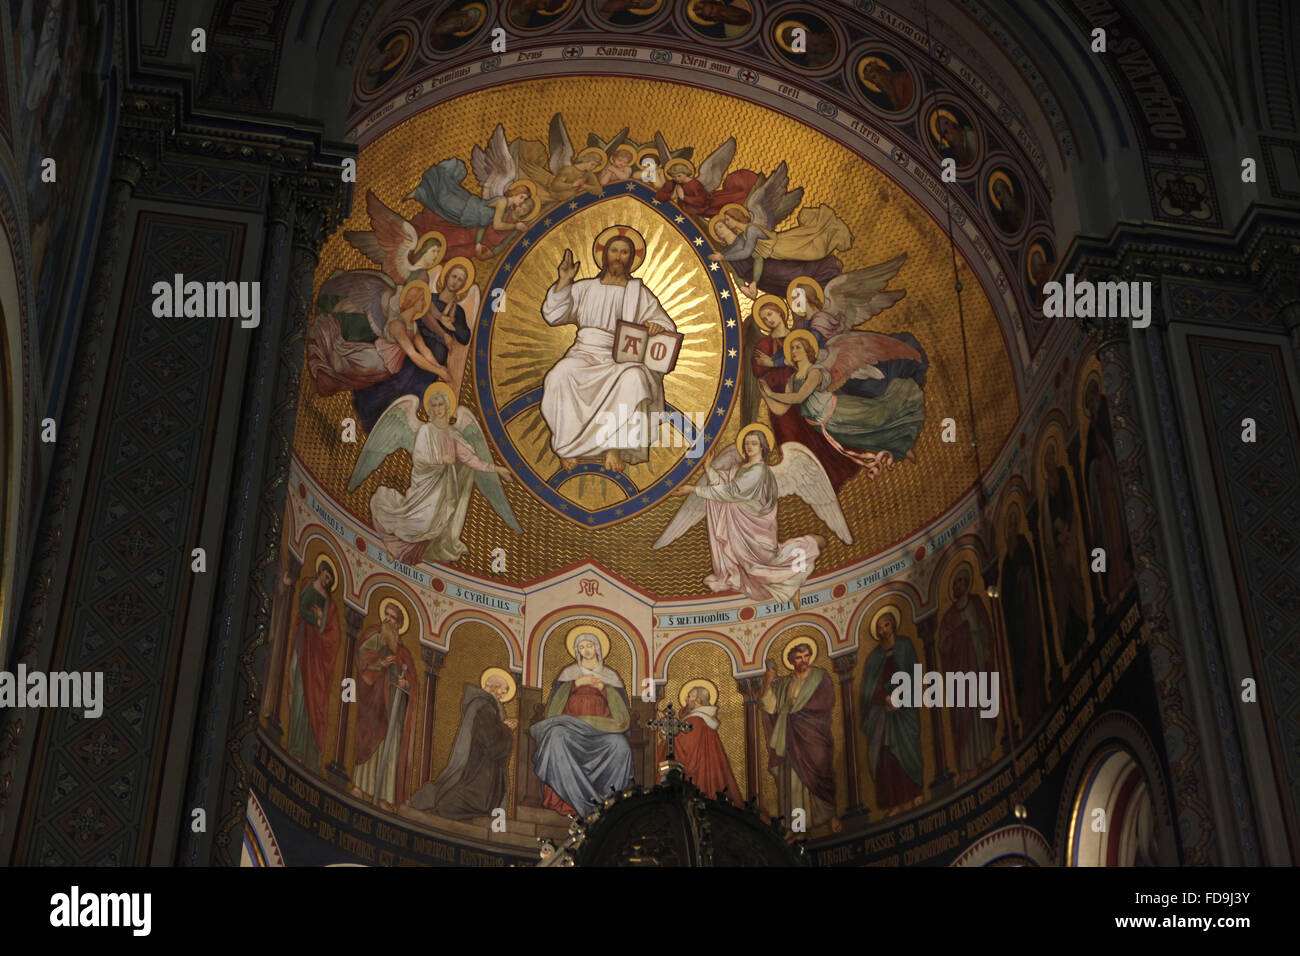 jesus christ surrounded by angels and the virgin mary with saints